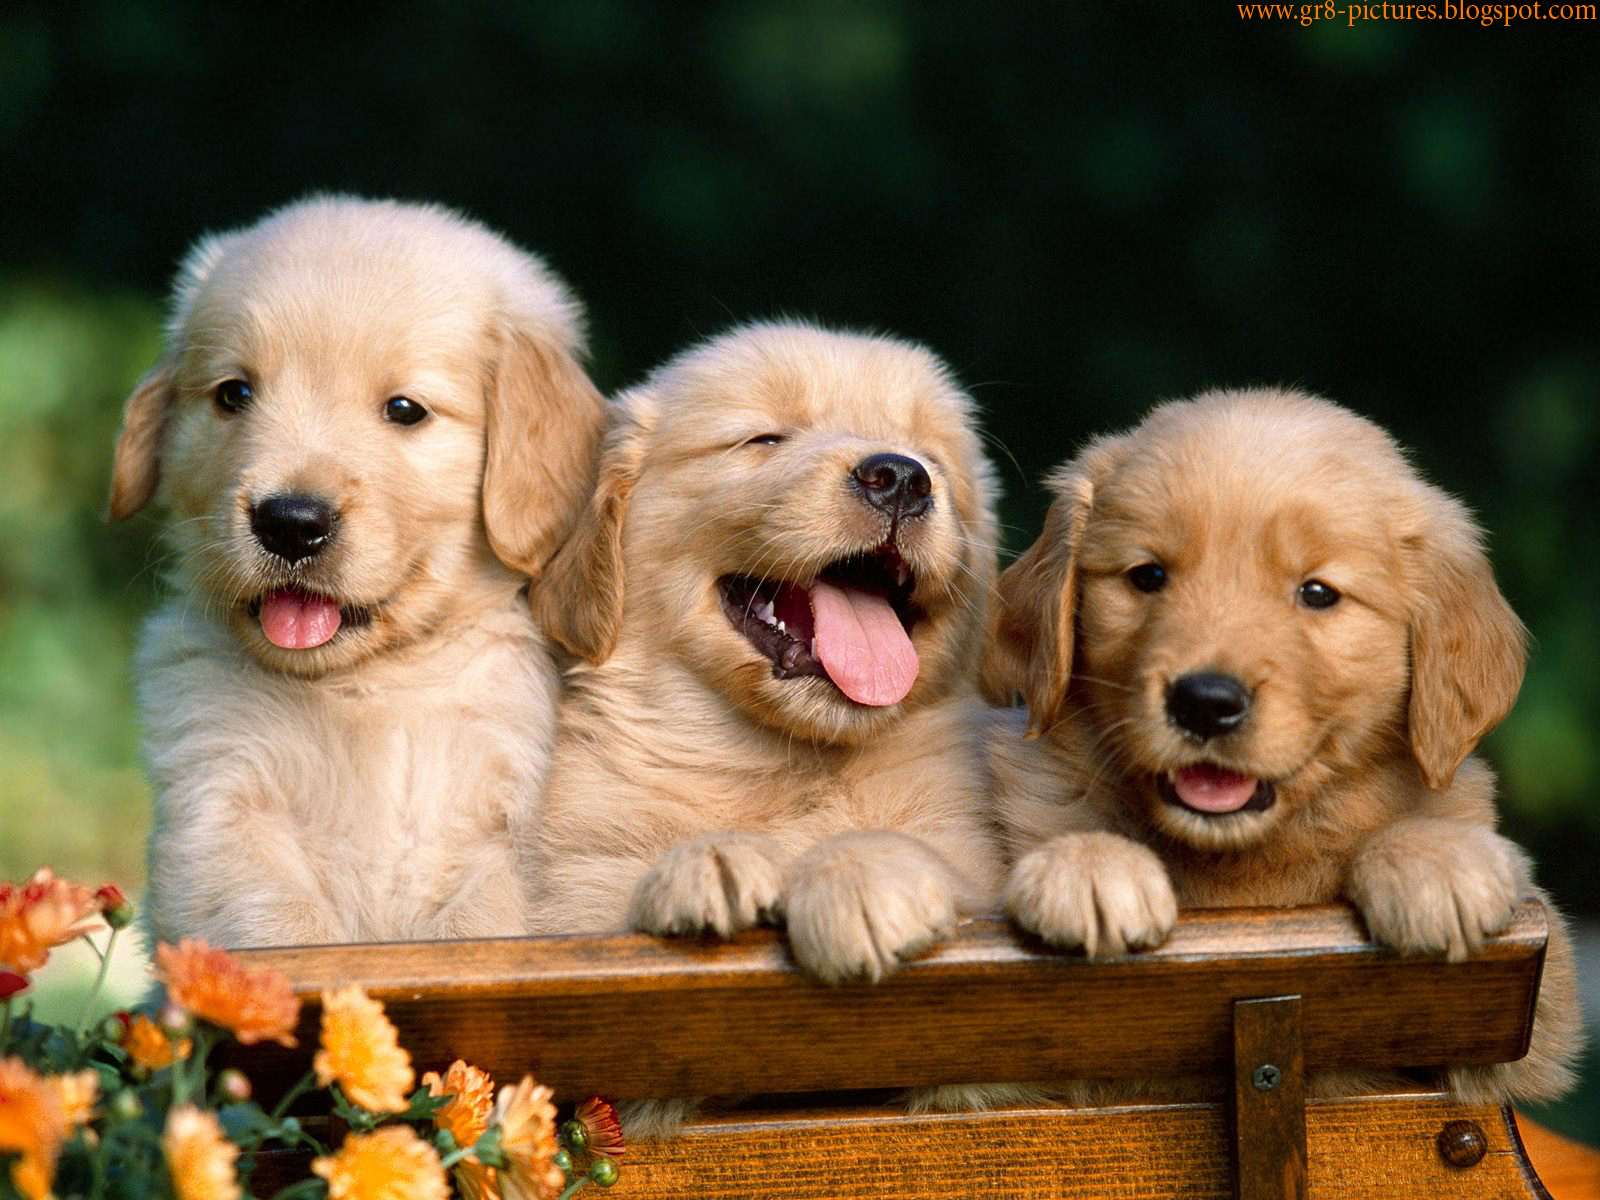 Pink Wallpaper With Cute Puppy Golden Retriever Hd Wallpapers Cute Puppies